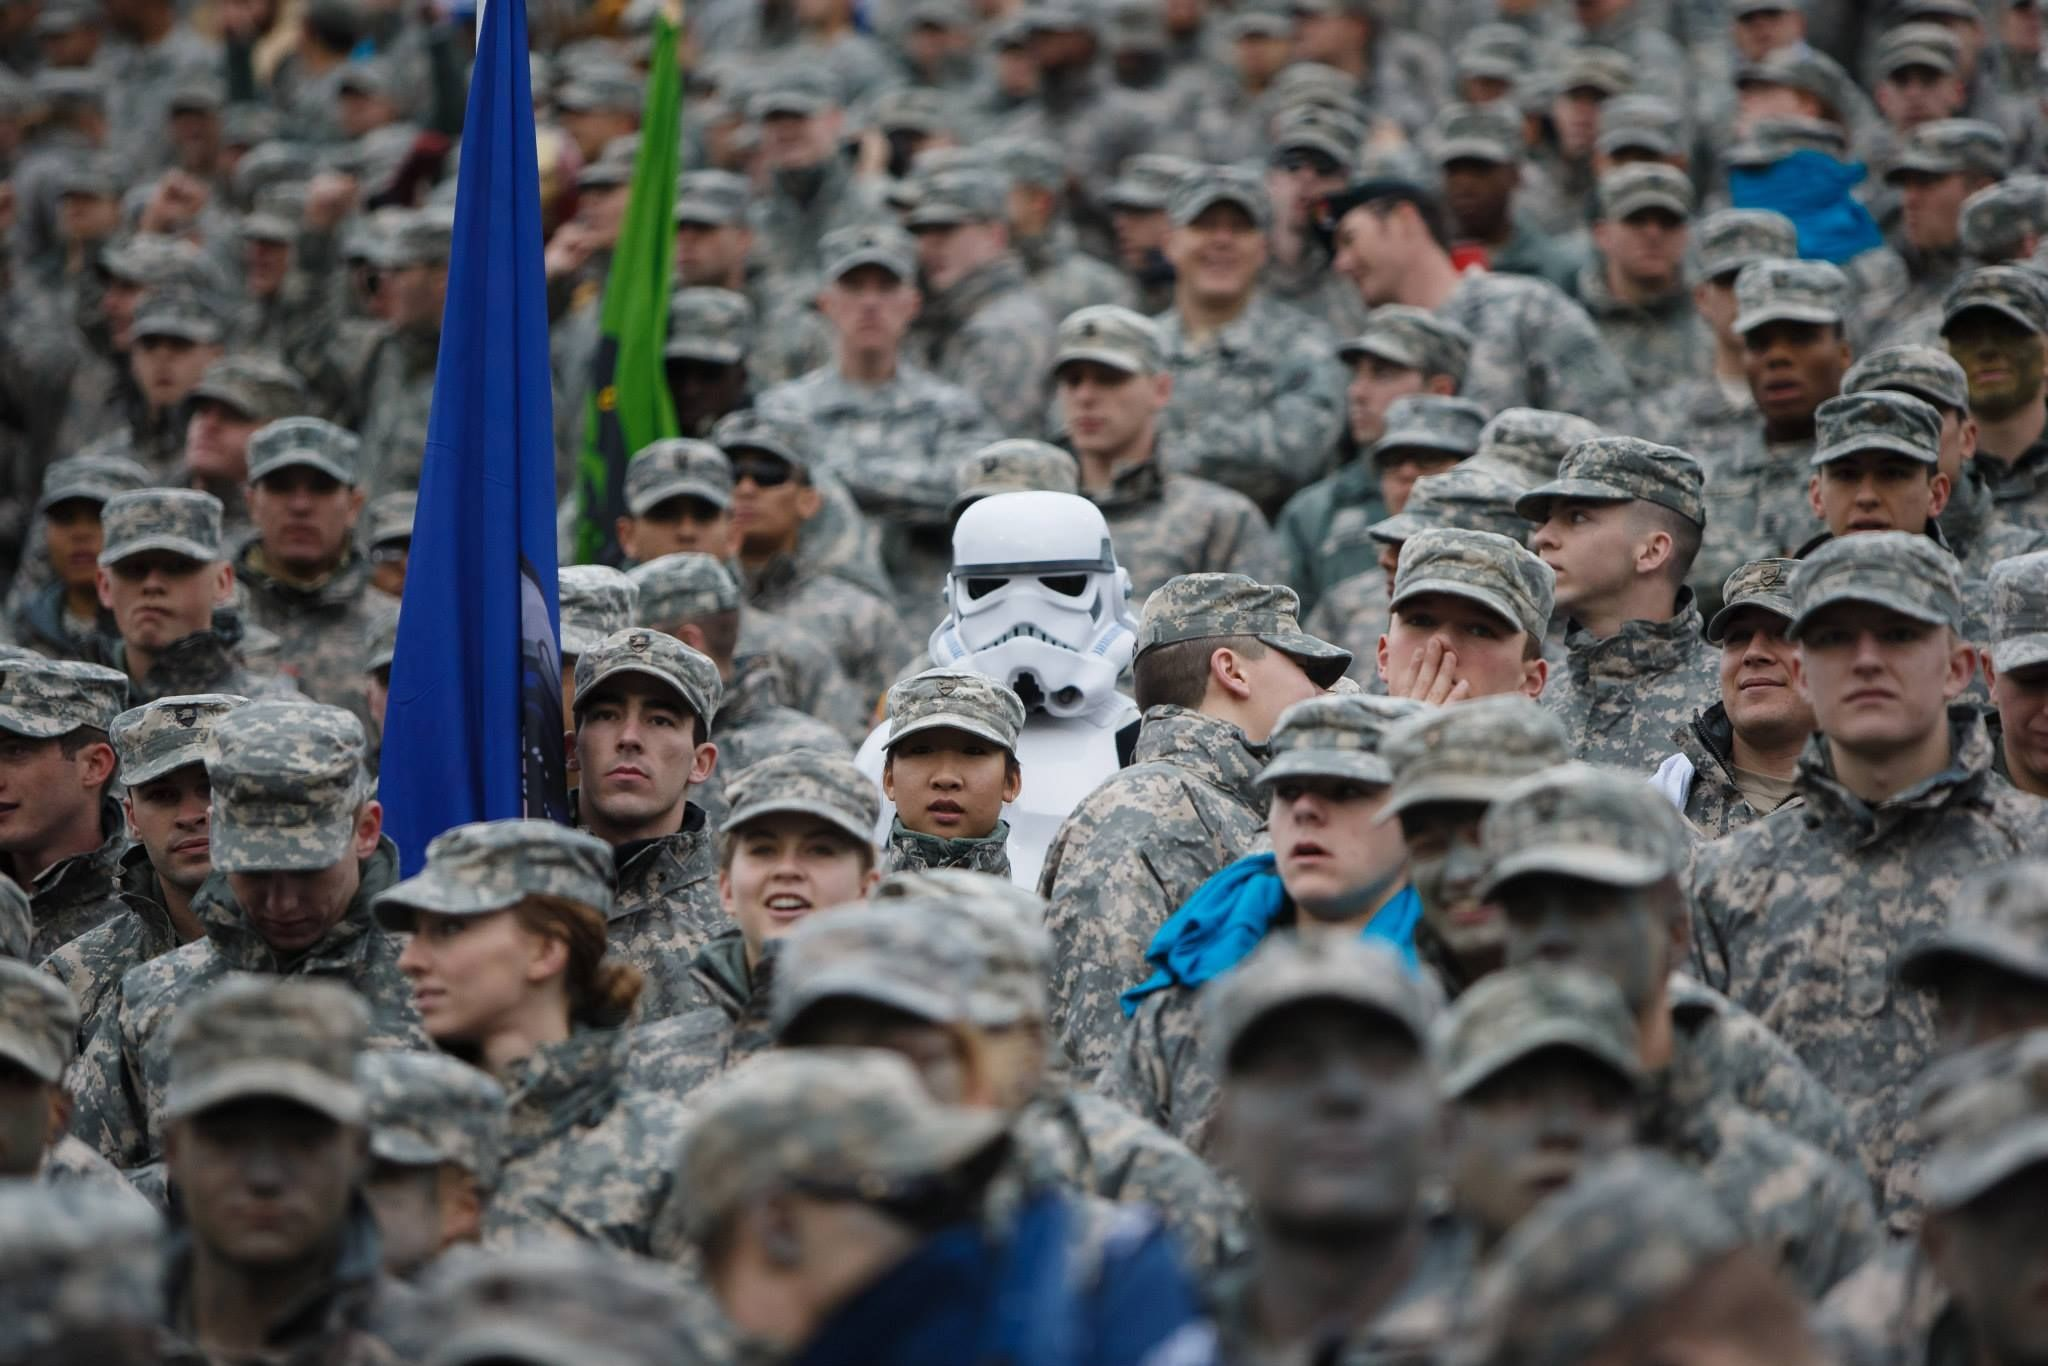 Spotted at the Air Force vs. Army football game Imgur